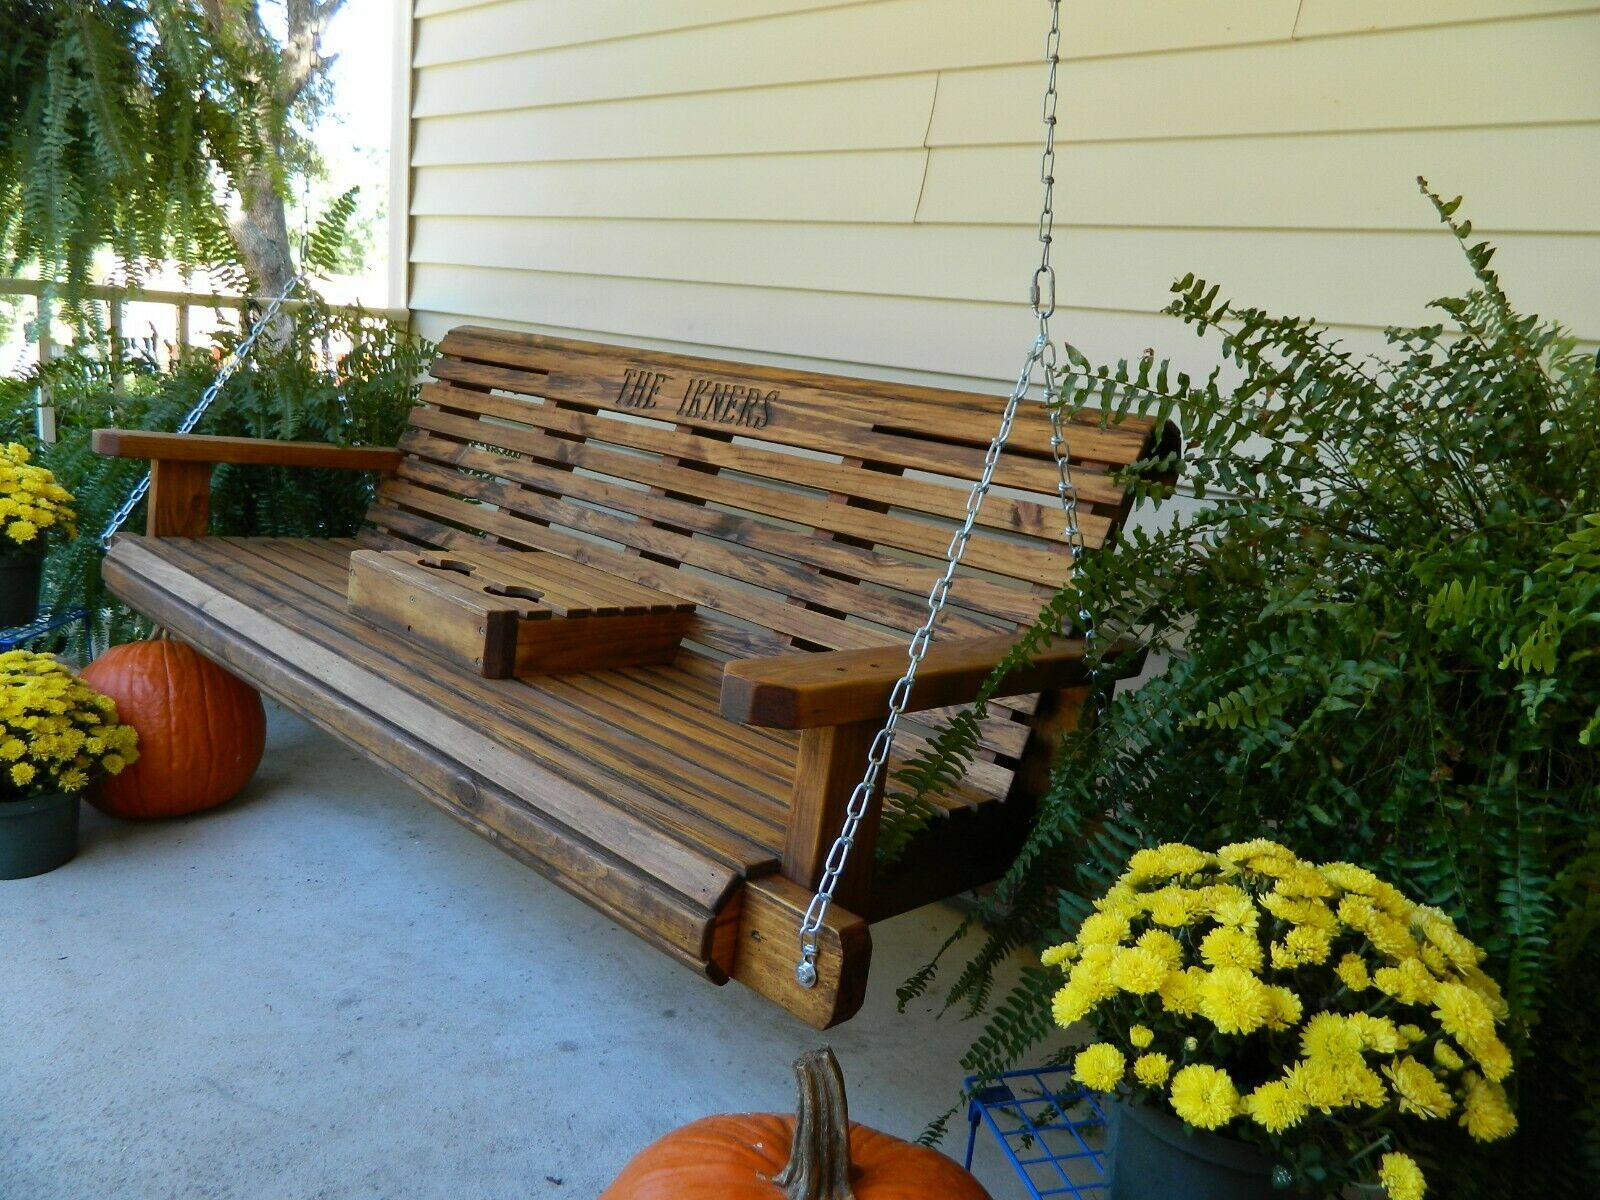 Southern Swings Handmade 5Ft Heavy Duty Porch Or Patio Swing Intended For 5 Ft Cedar Swings With Springs (View 11 of 25)